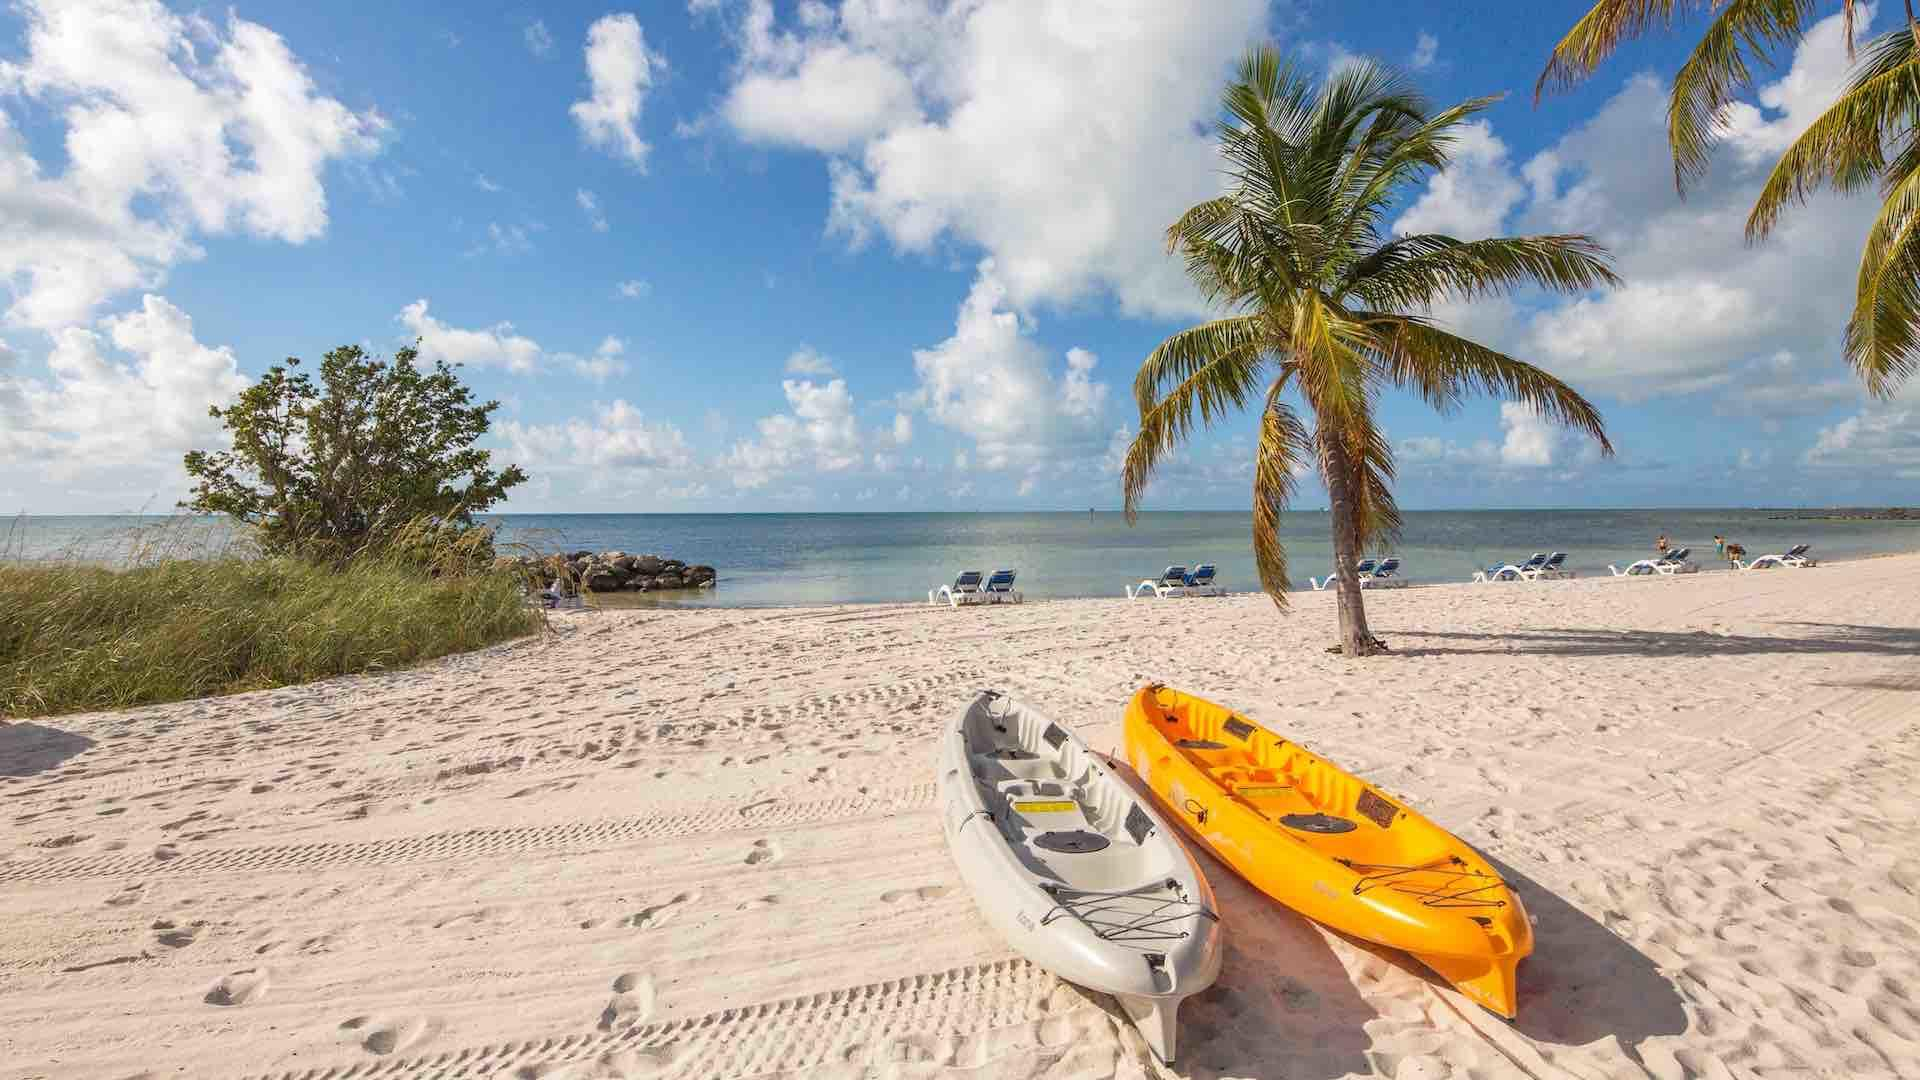 Get out on the water and enjoy the beautiful Key West waters during your stay...